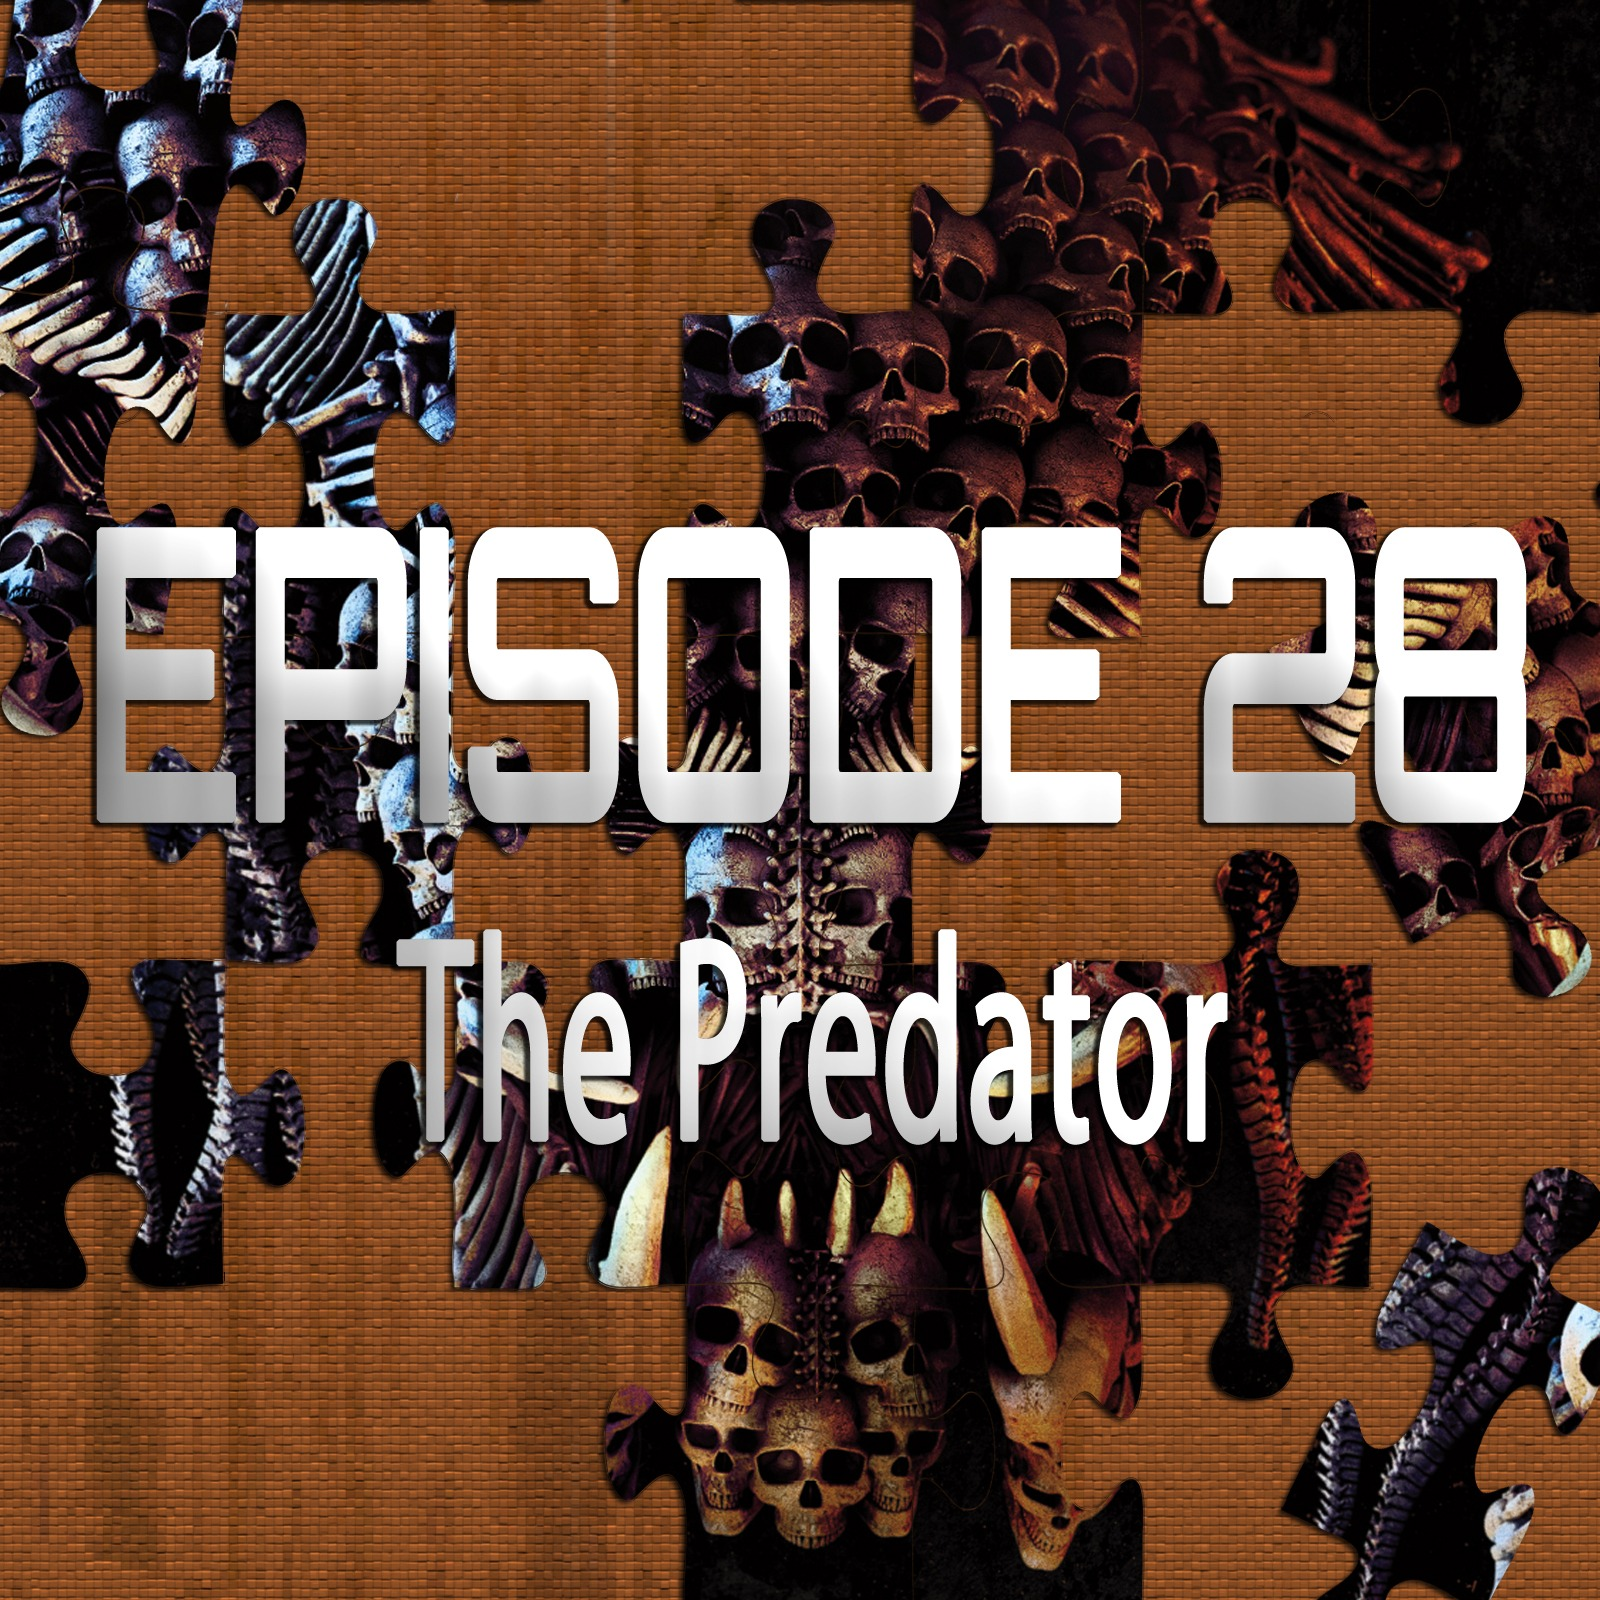 The Predator (Featuring Ryan Daugherty)